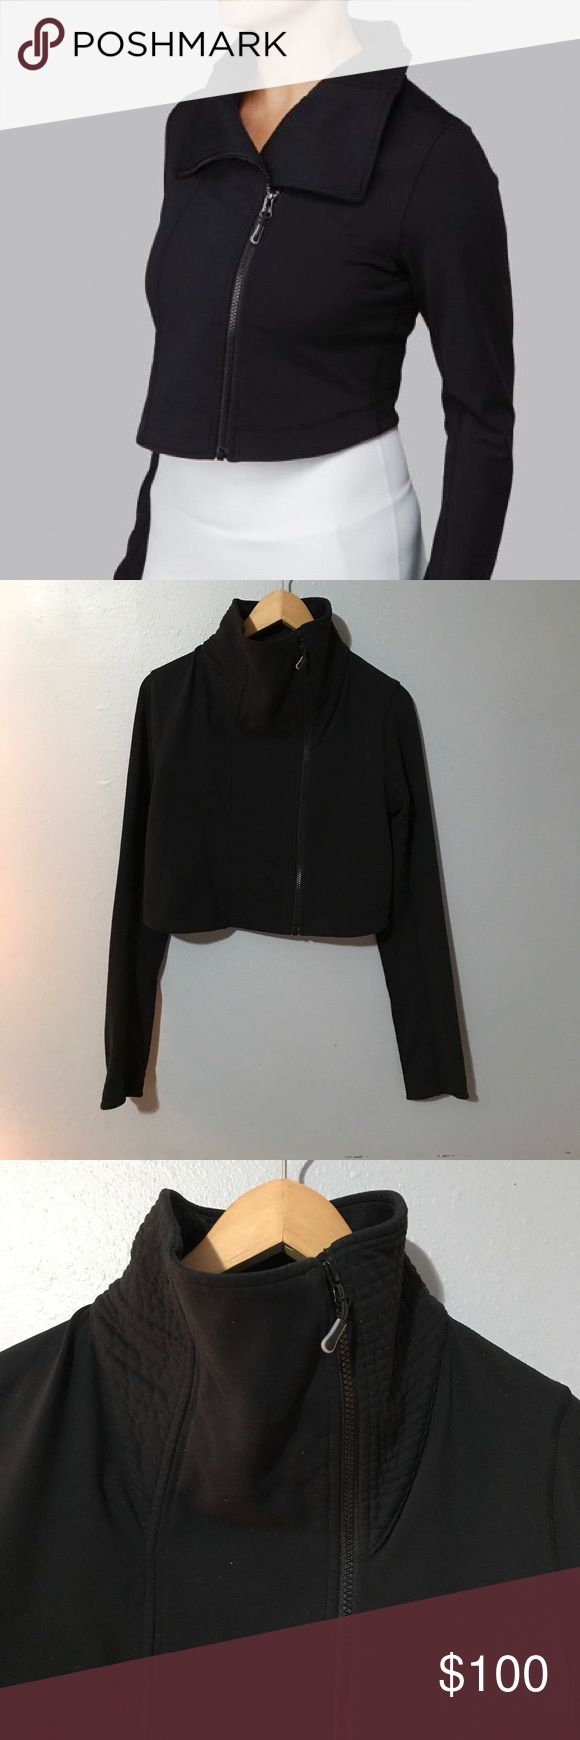 Lululemon Principle Cropped Jacket Gently preloved condition with no rips or stains. 87% nylon. 13% Lycra spandex. Please see all photos for accurate description of condition. Happy to answer any questions. lululemon athletica Jackets & Coats